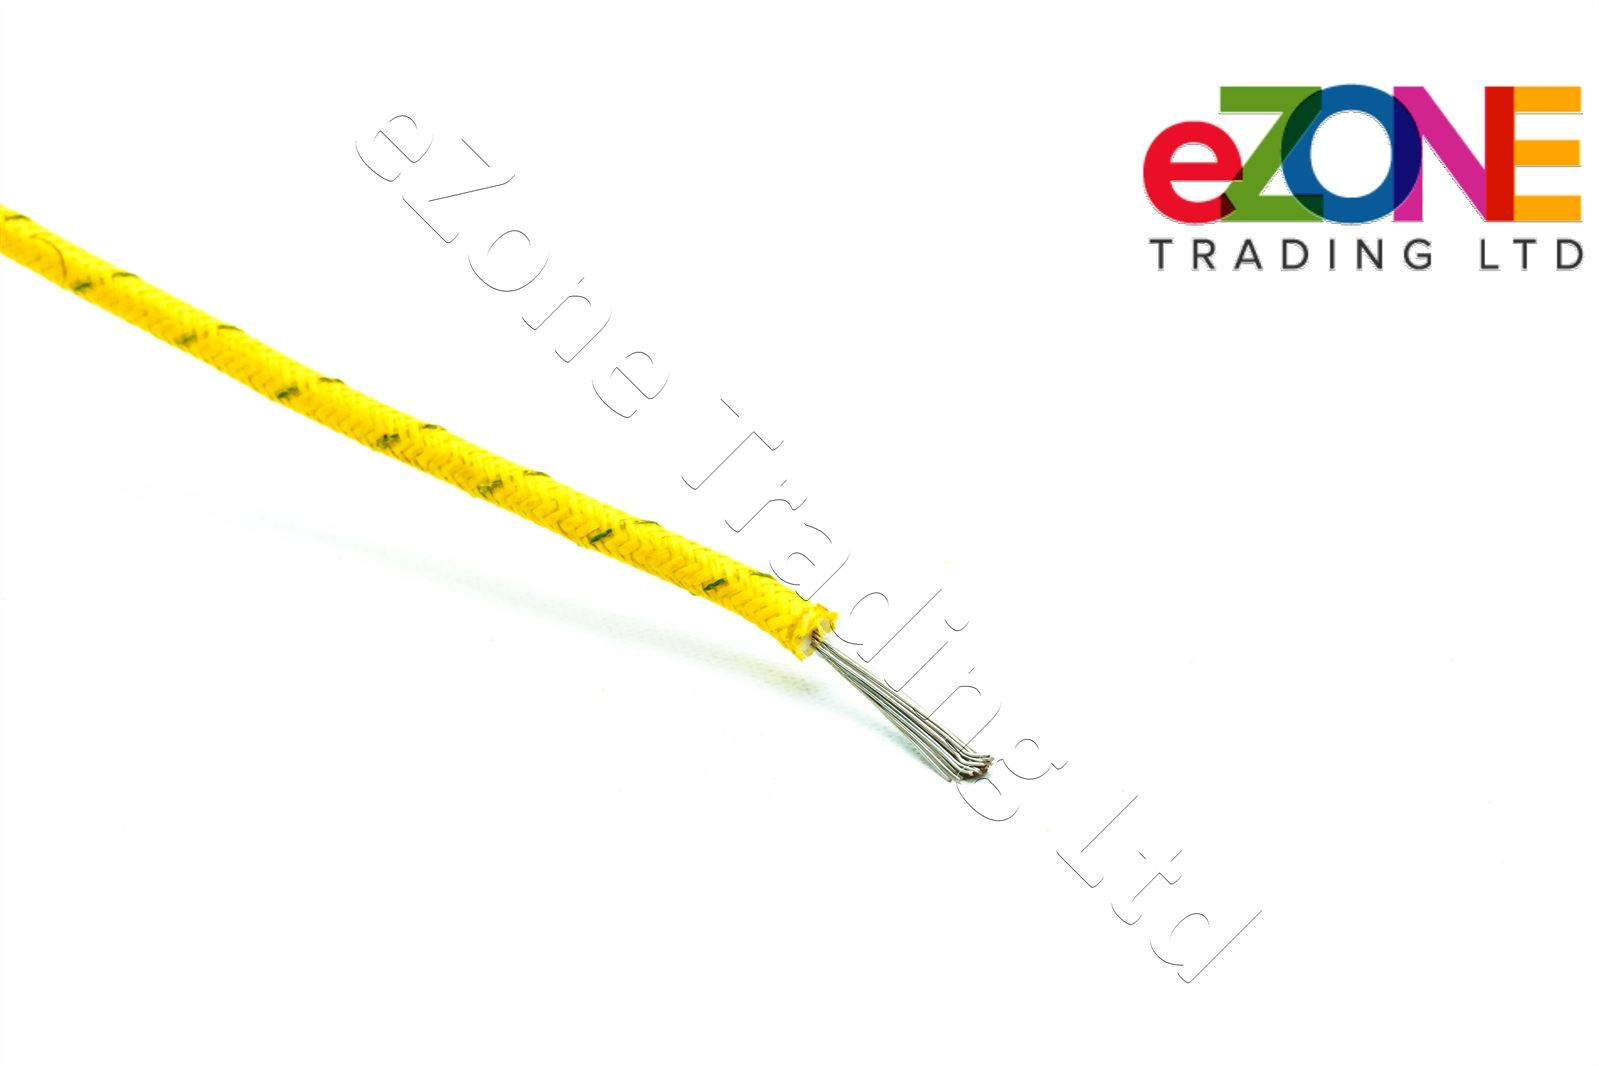 Heat Resistant High Temperature Glass Fibre Wire cable 1.5mm | eBay